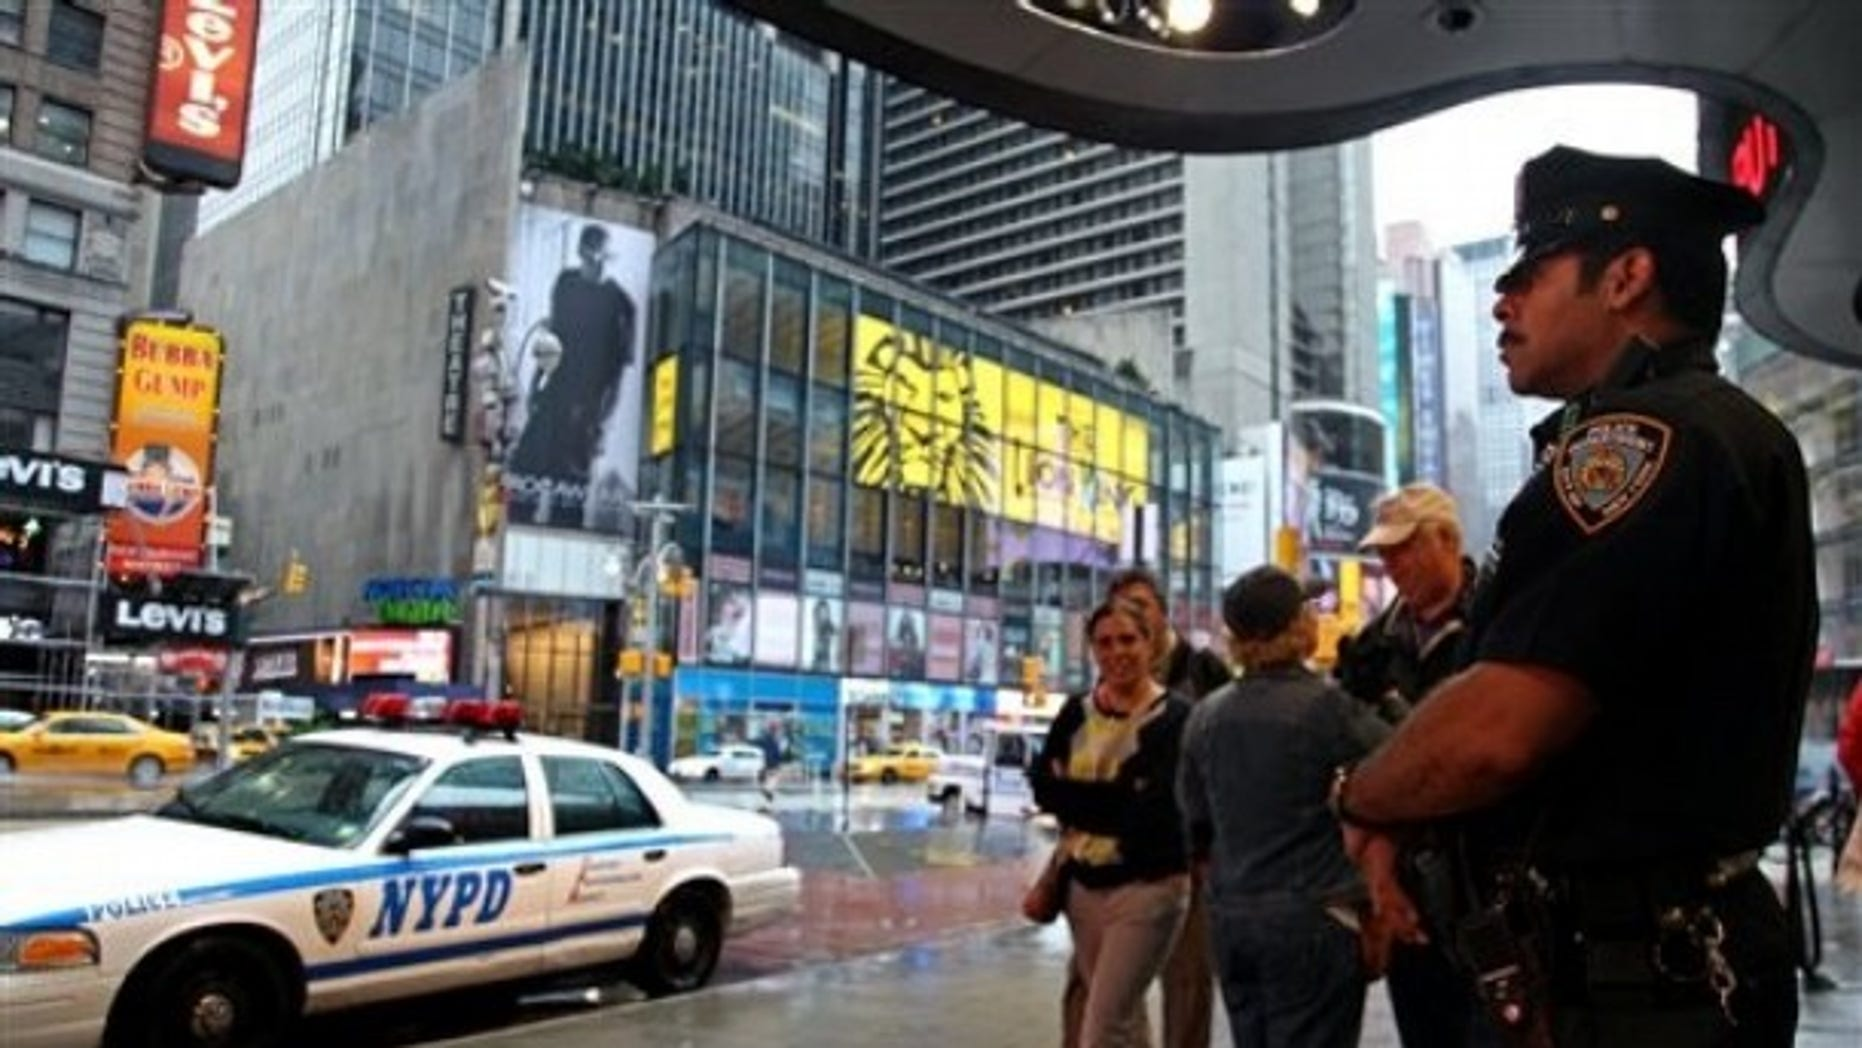 May 3, 2010: A New York City police officer stands watch on Times Square in the wake of a car bomb attempt carried out by a Pakistani-American man.